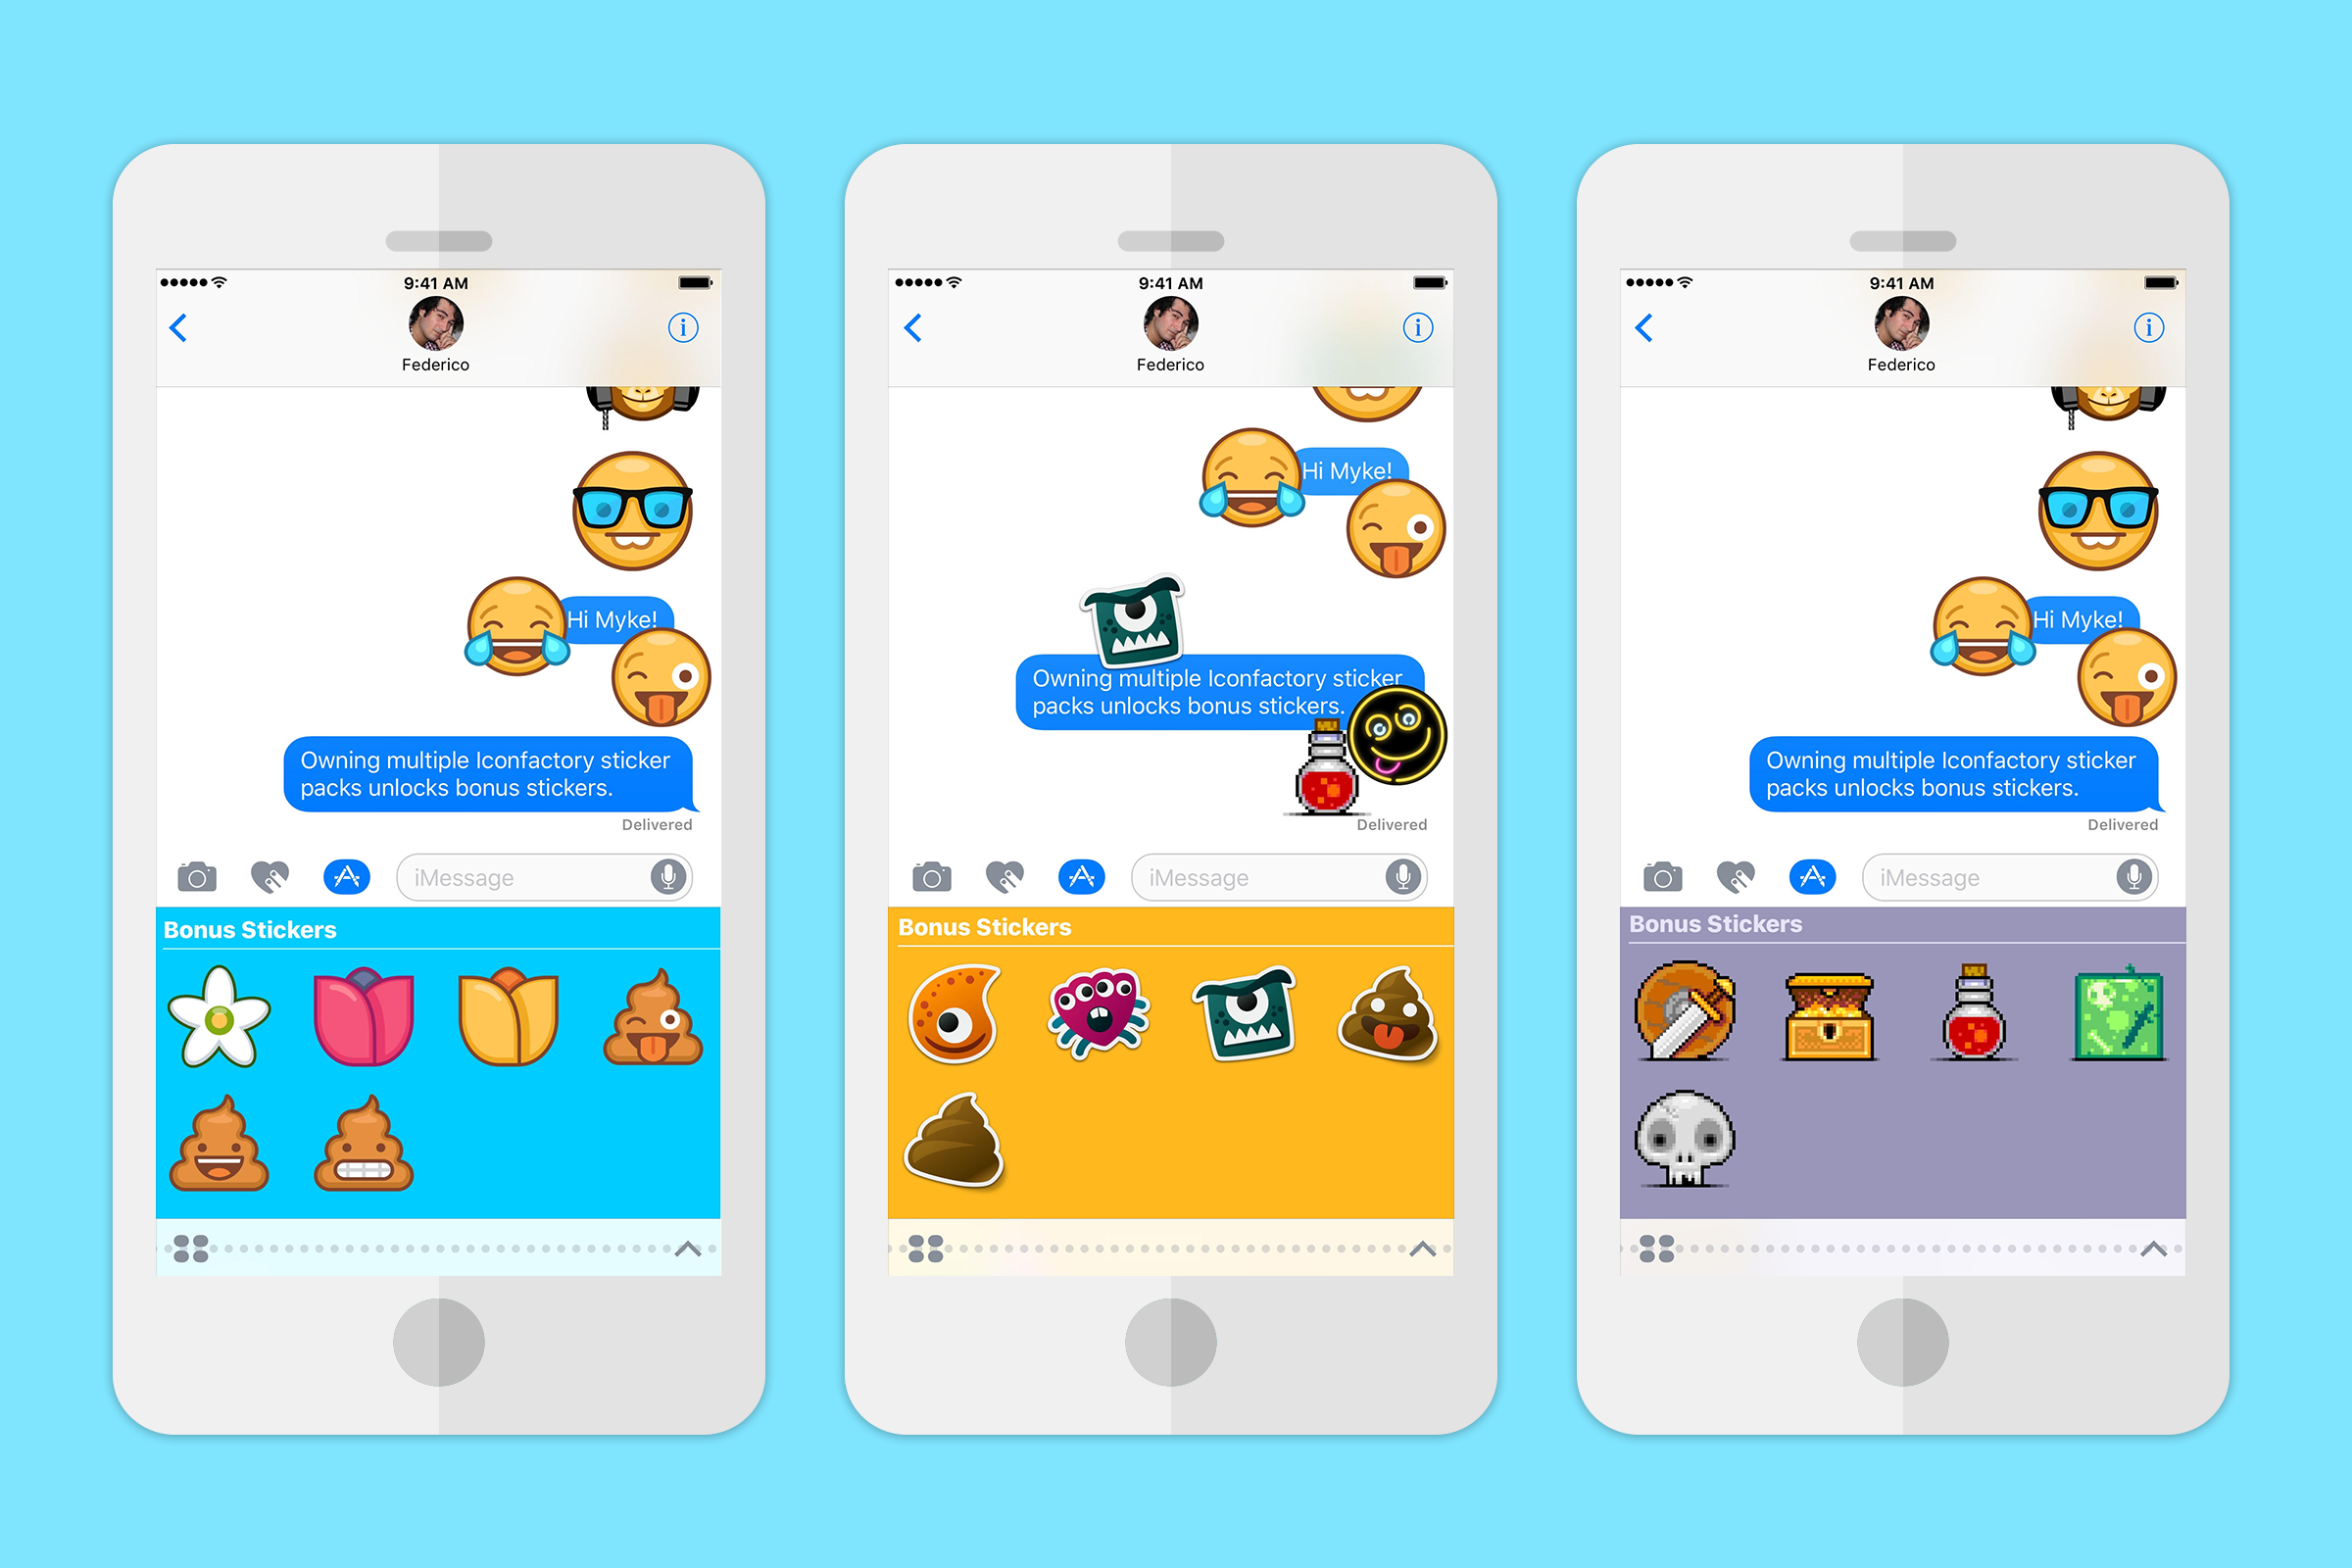 Users can place emoji designs using emoji stickers in messaging apps